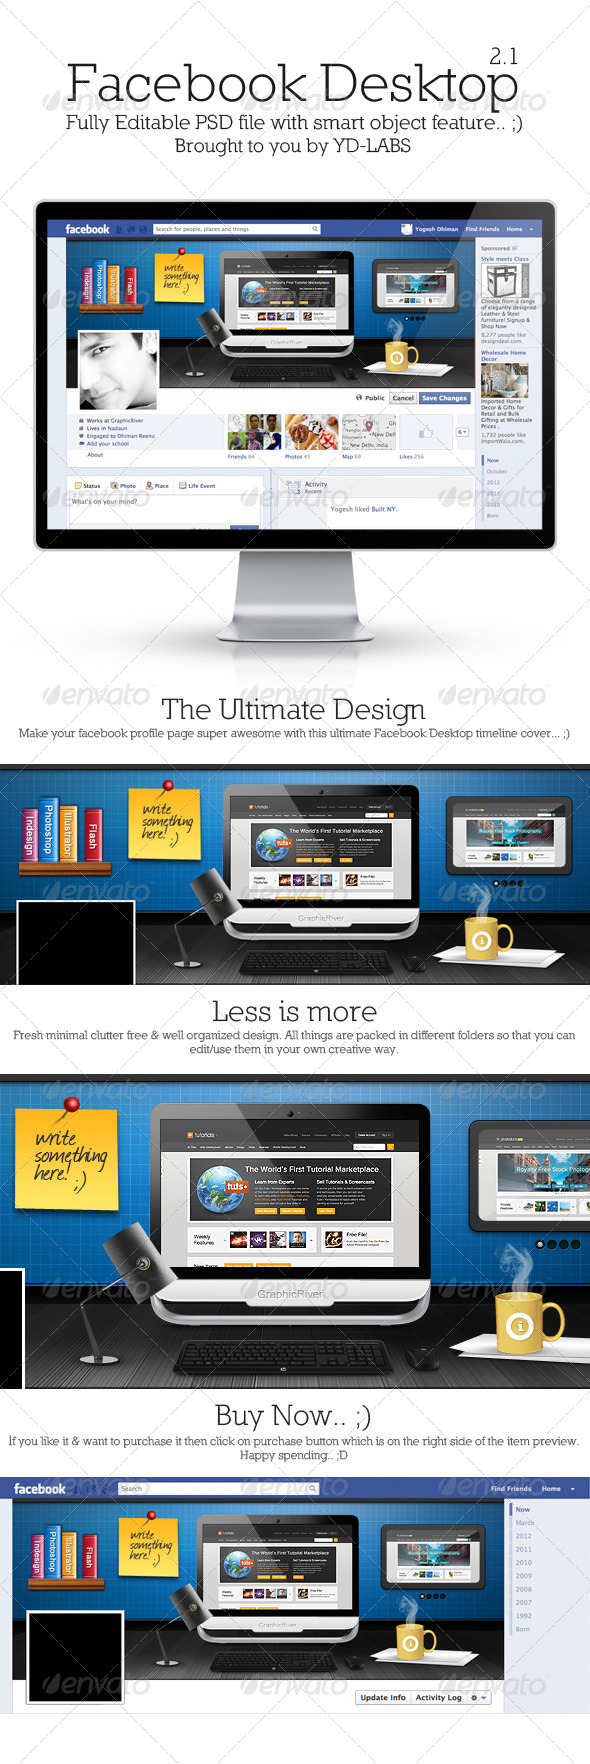 GraphicRiver FB Desktop 2.1 3375214